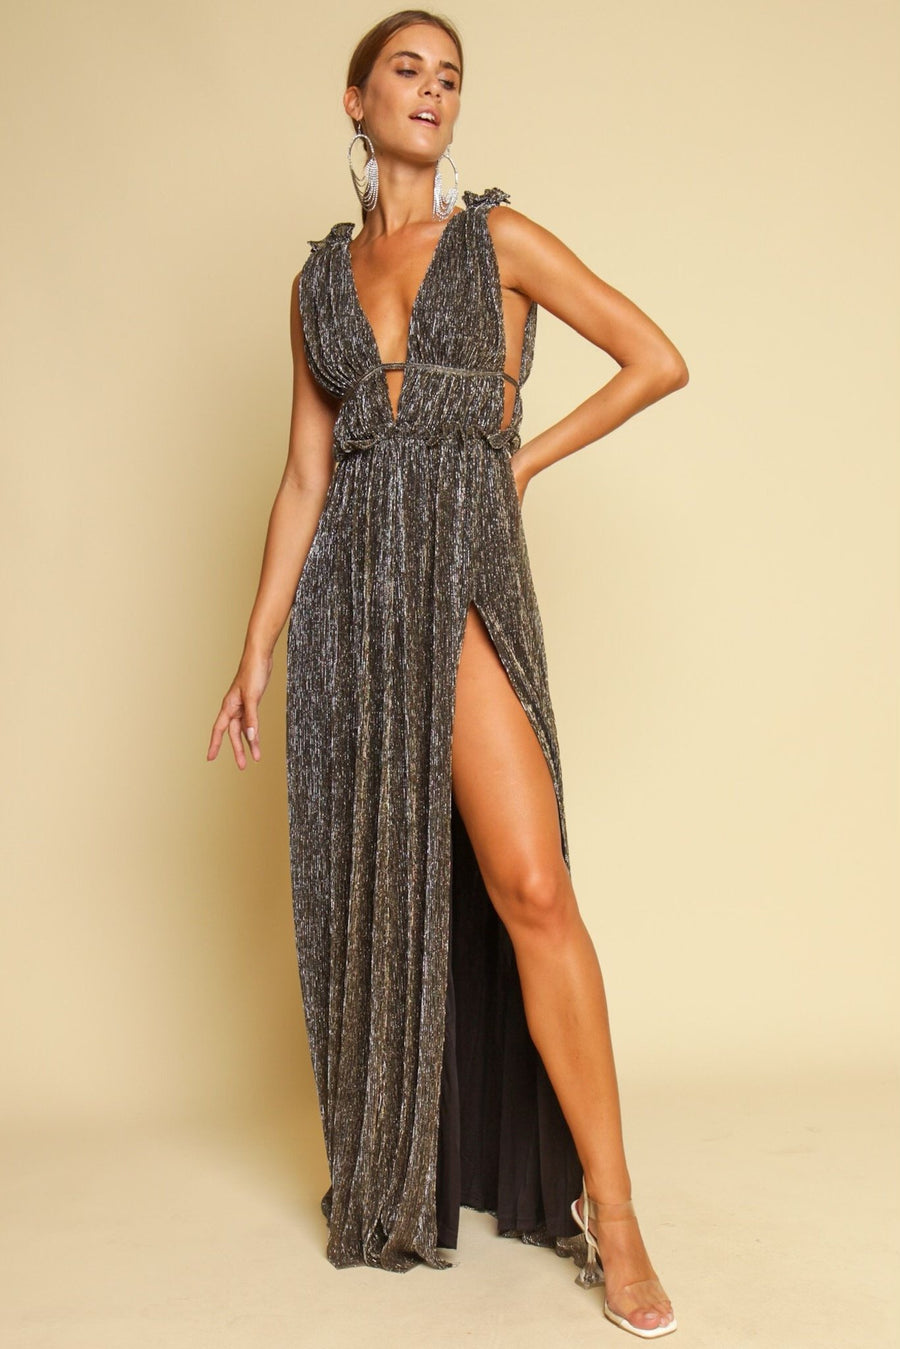 One Past Midnight Maxi Dress Black